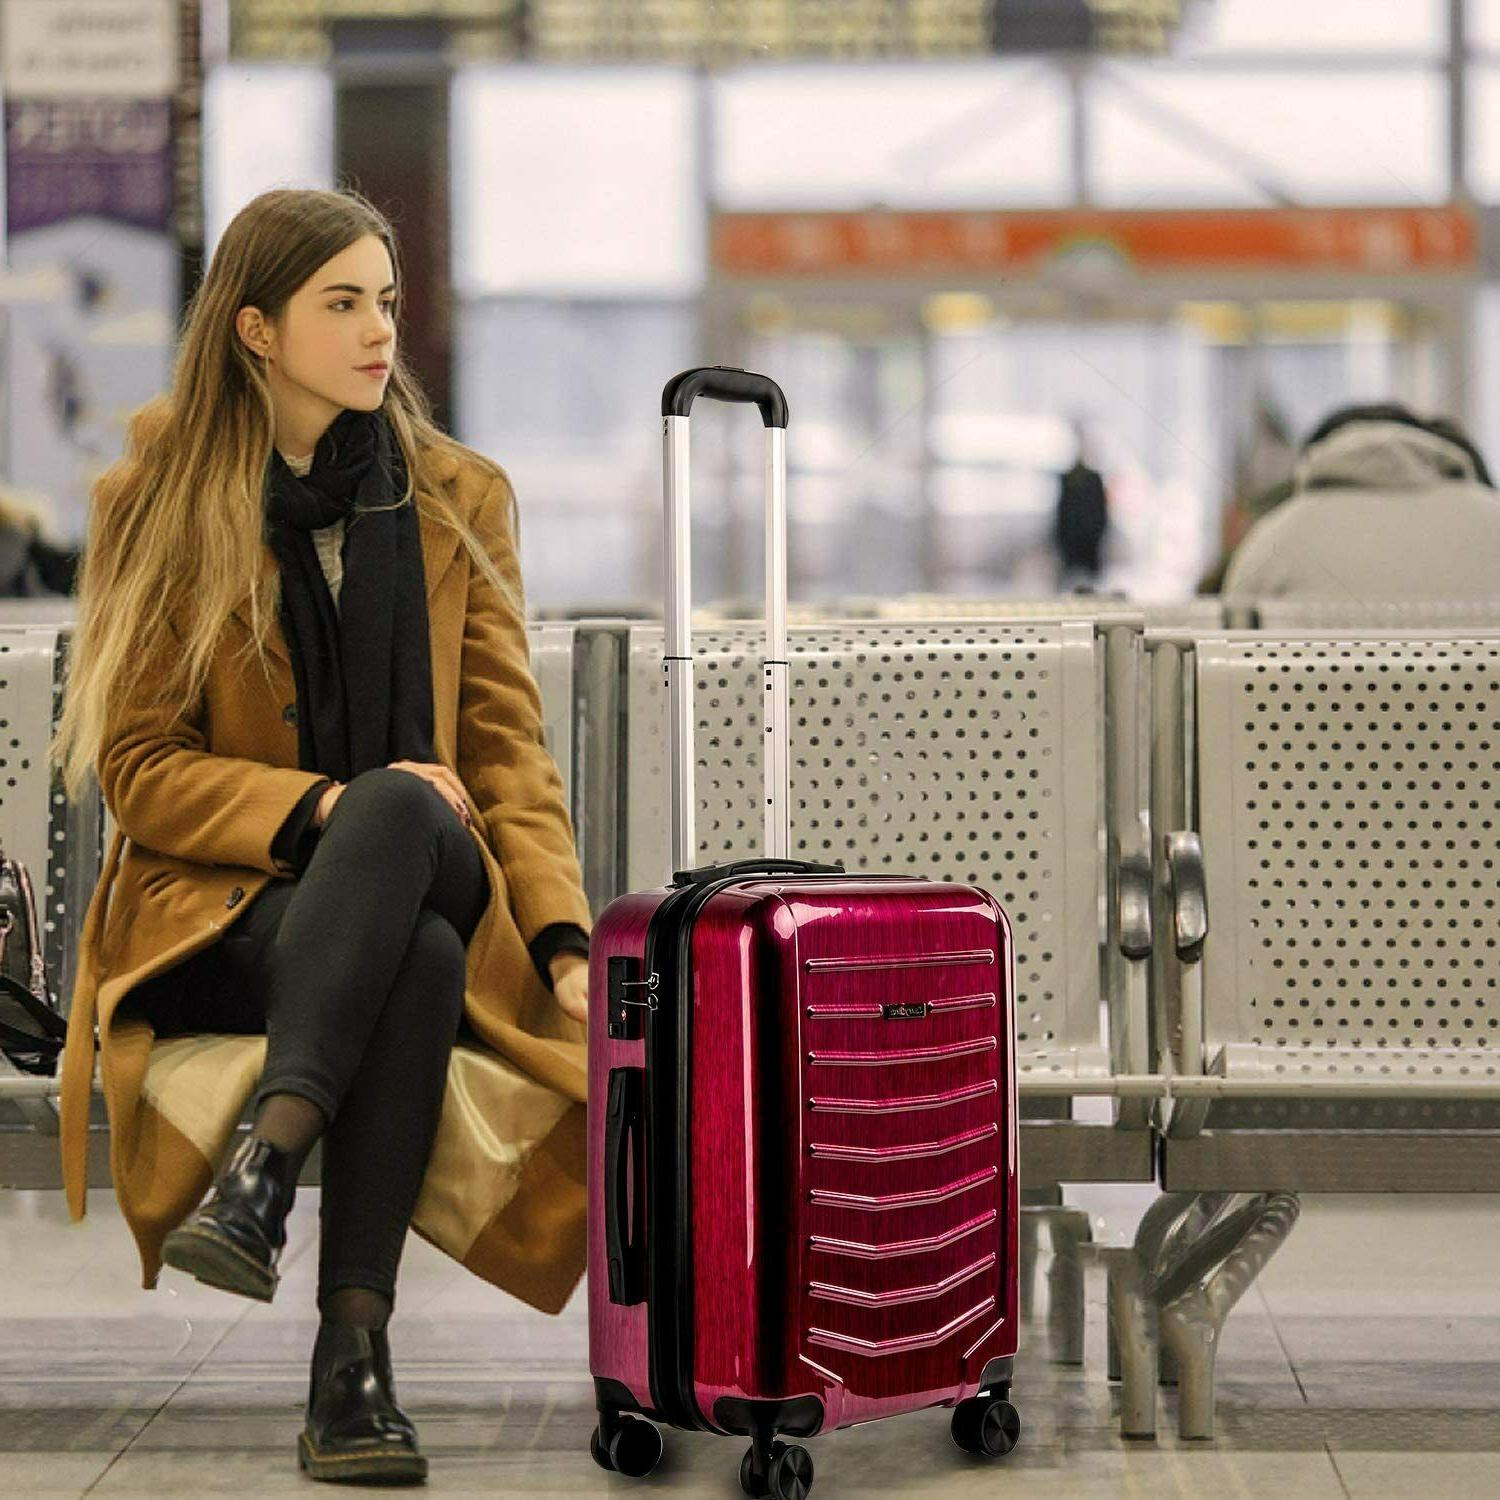 CarryOne 21 Inch Travel Suitcase Sile